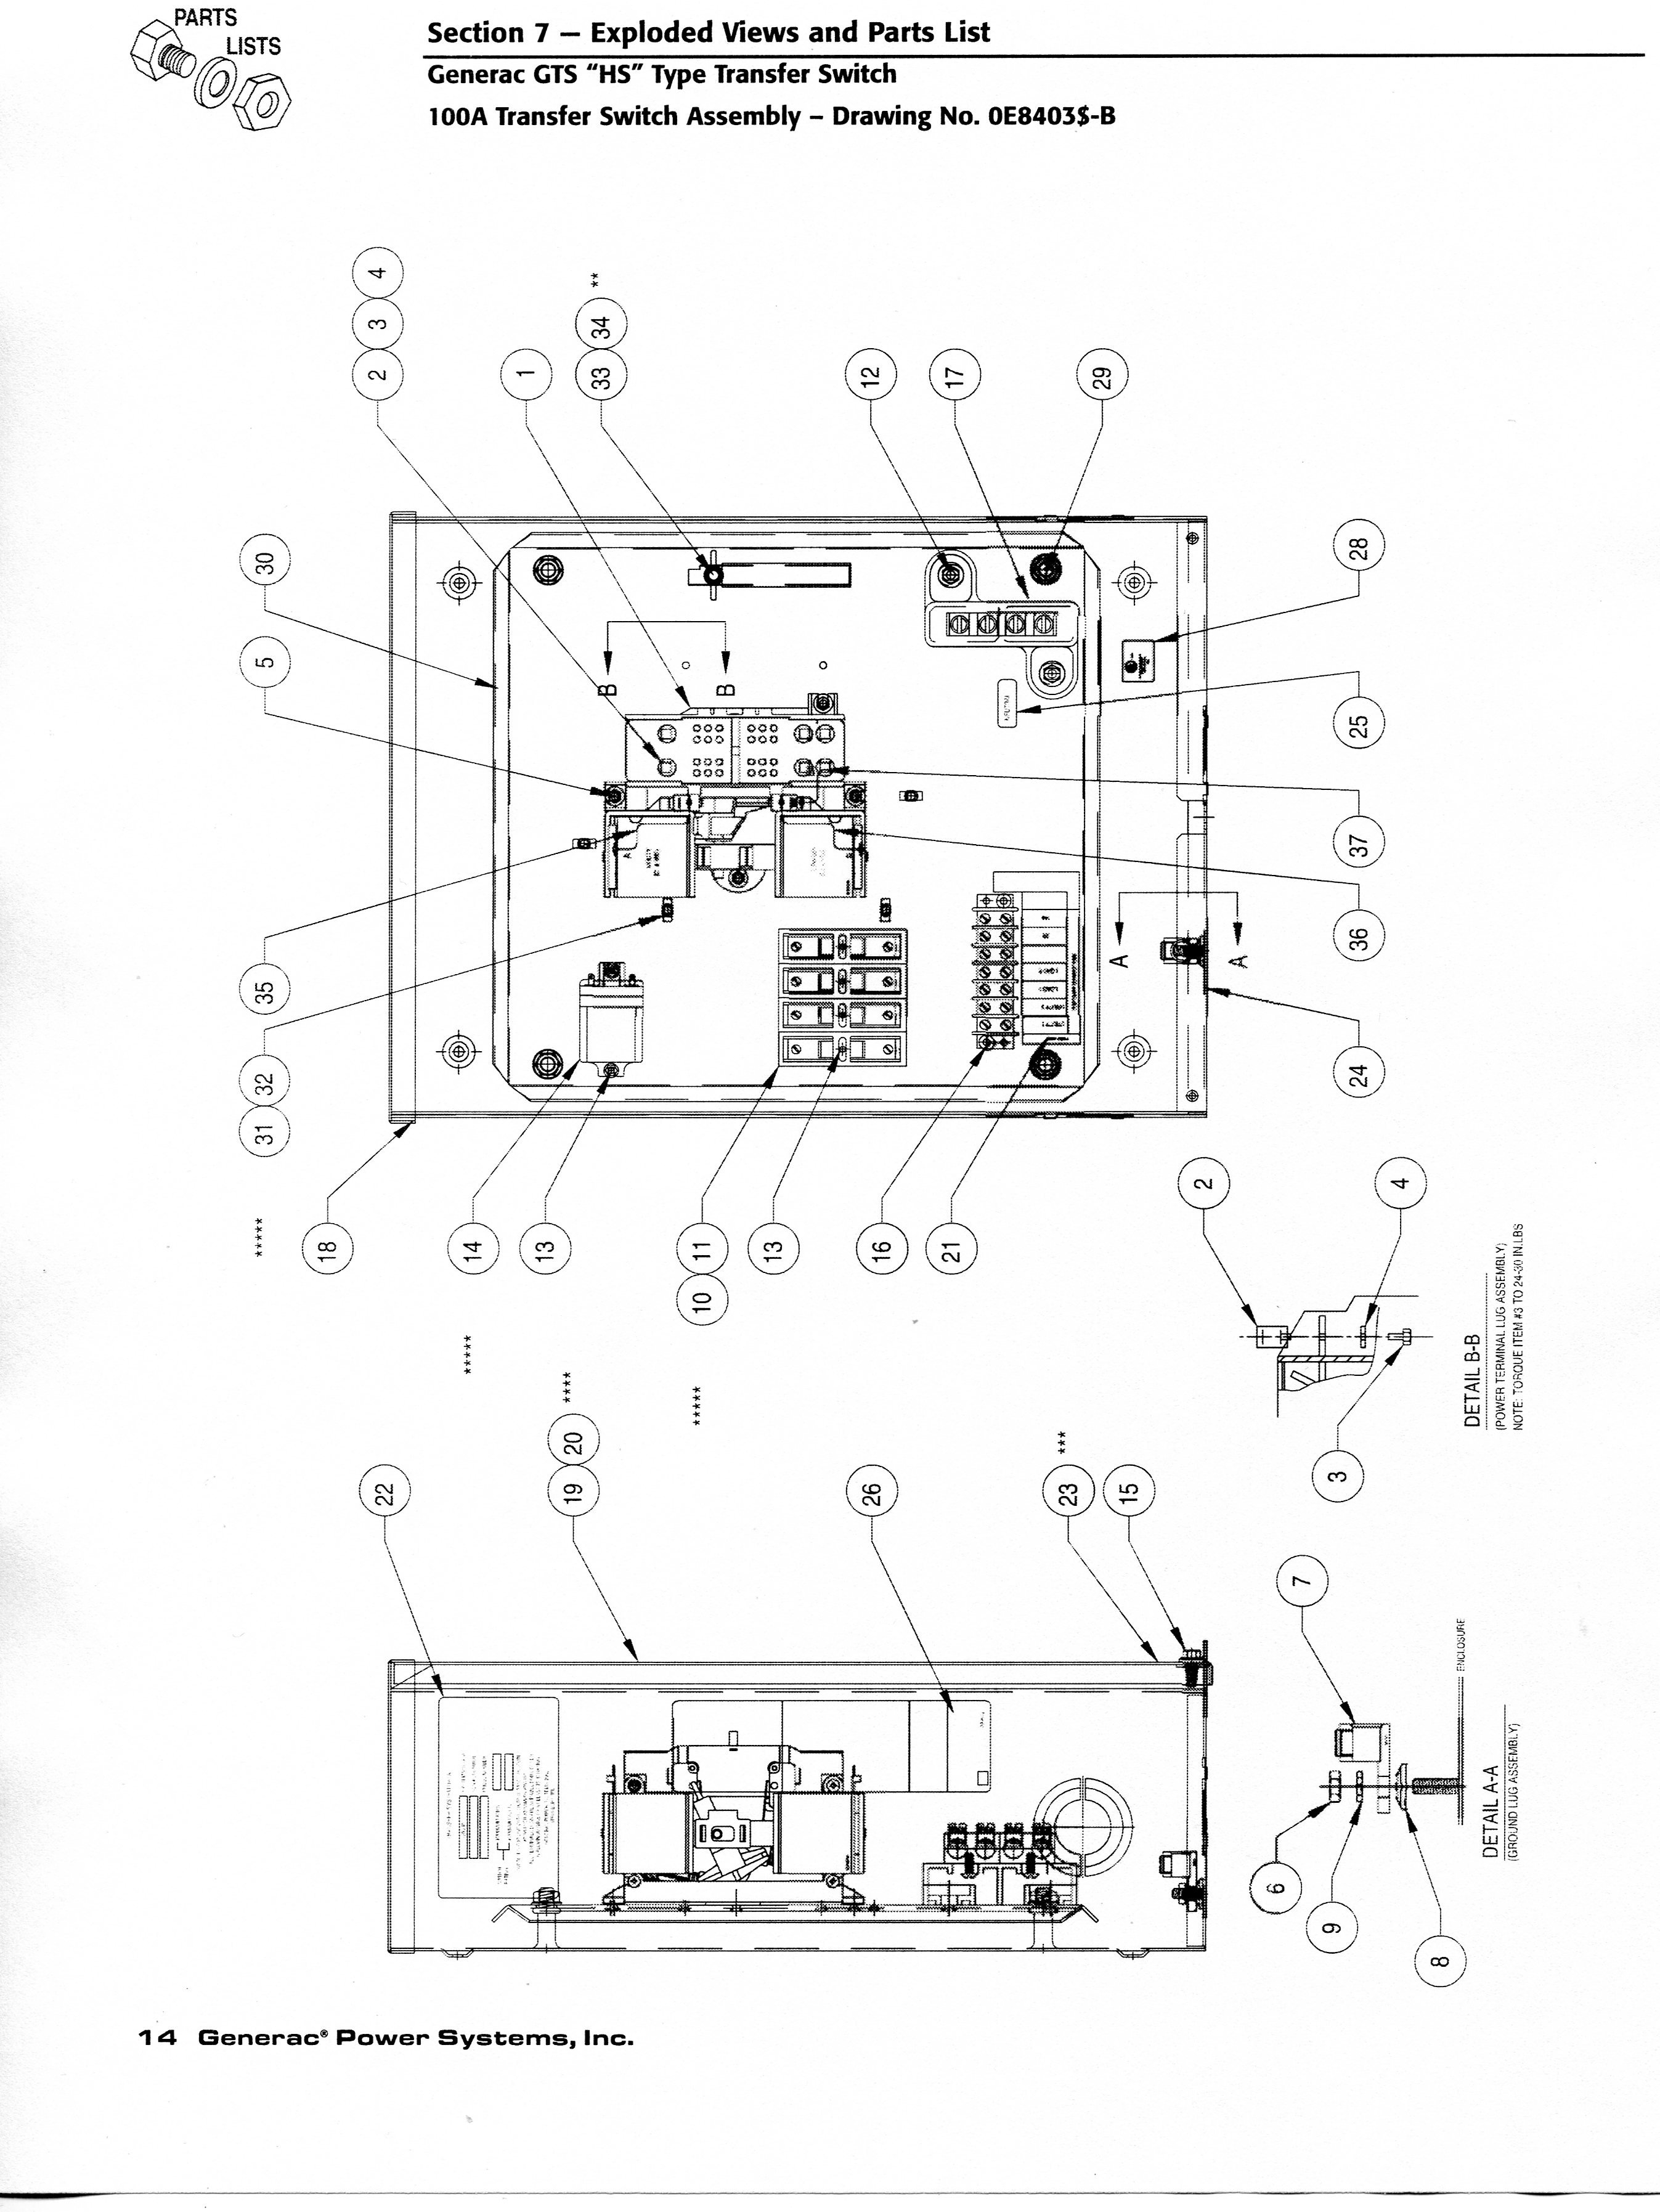 2011 01 01_232854_ts_ hs001 generac generator automatic transfer switch not working generac gts transfer switch wiring diagram at gsmx.co